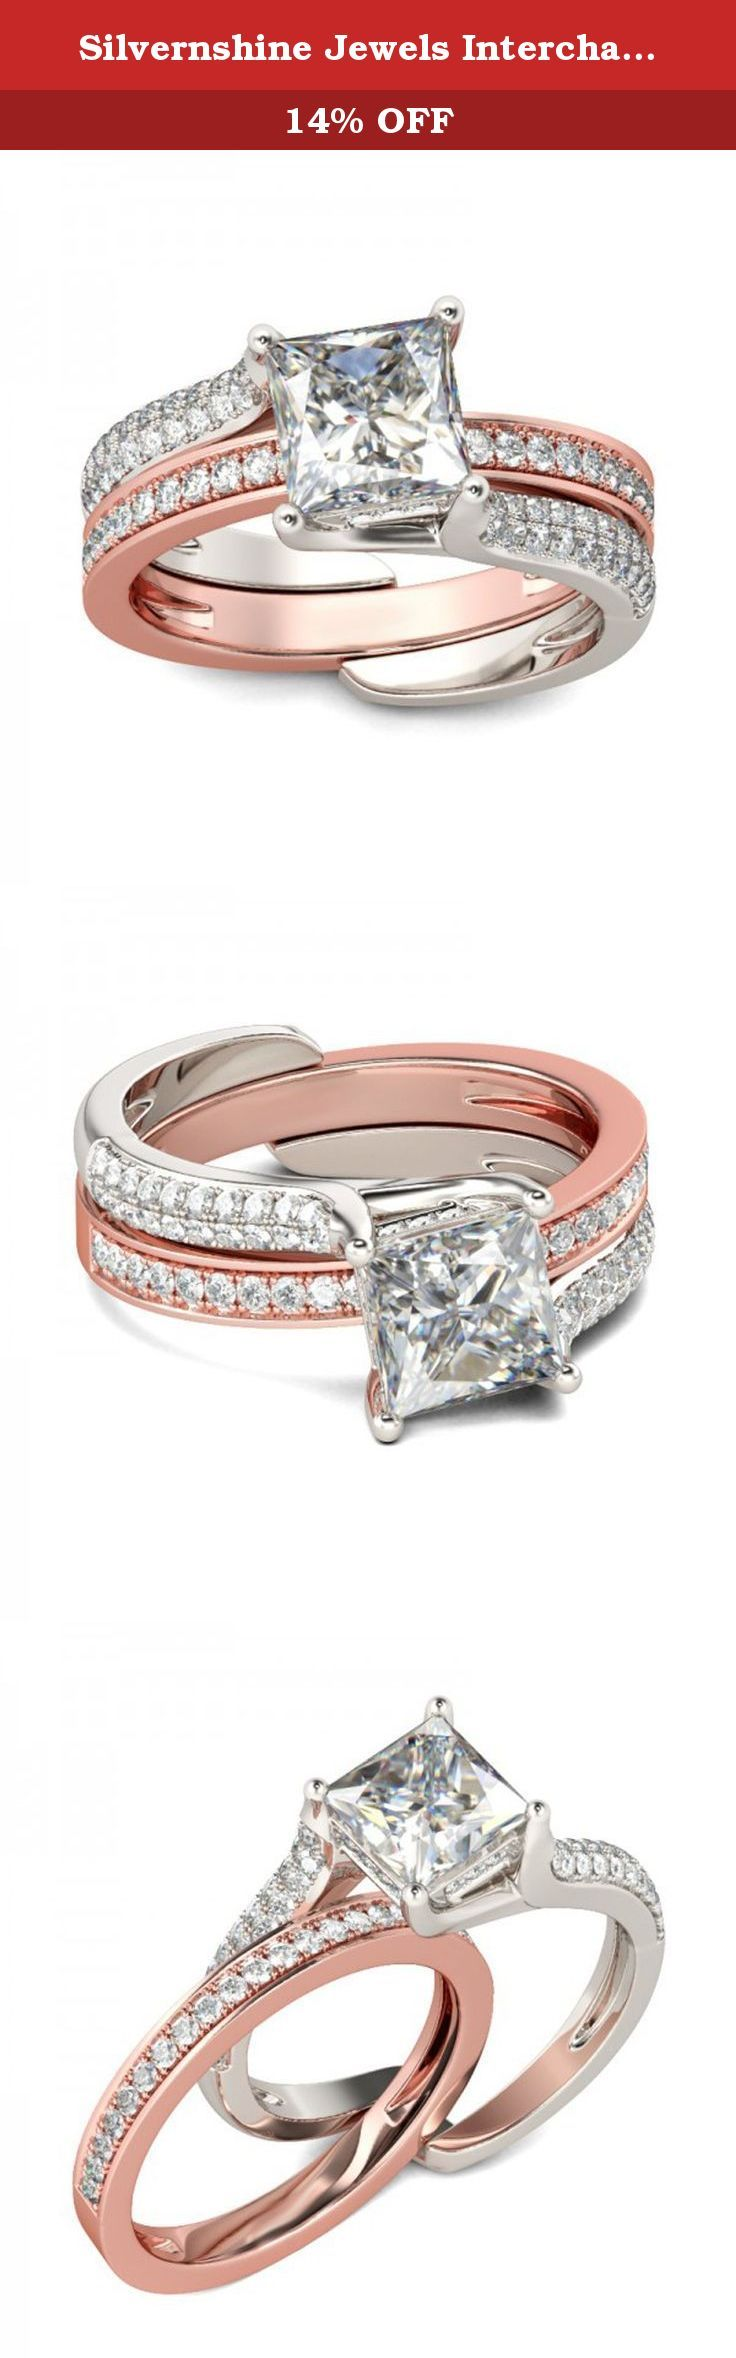 Silvernshine Jewels Interchangable W/ Enhancer In 2 Tone Pink & White Plated Alloy 1.23 Ctw Round Cut Clear Princess & Round Cut Diamonds Bridal Ring. Silvernshine Jewels Interchangable W/ Enhancer In 2 Tone Pink & White Plated Alloy 1.23 Ctw Round Cut Clear Princess & Round Cut Diamonds Bridal Ring.